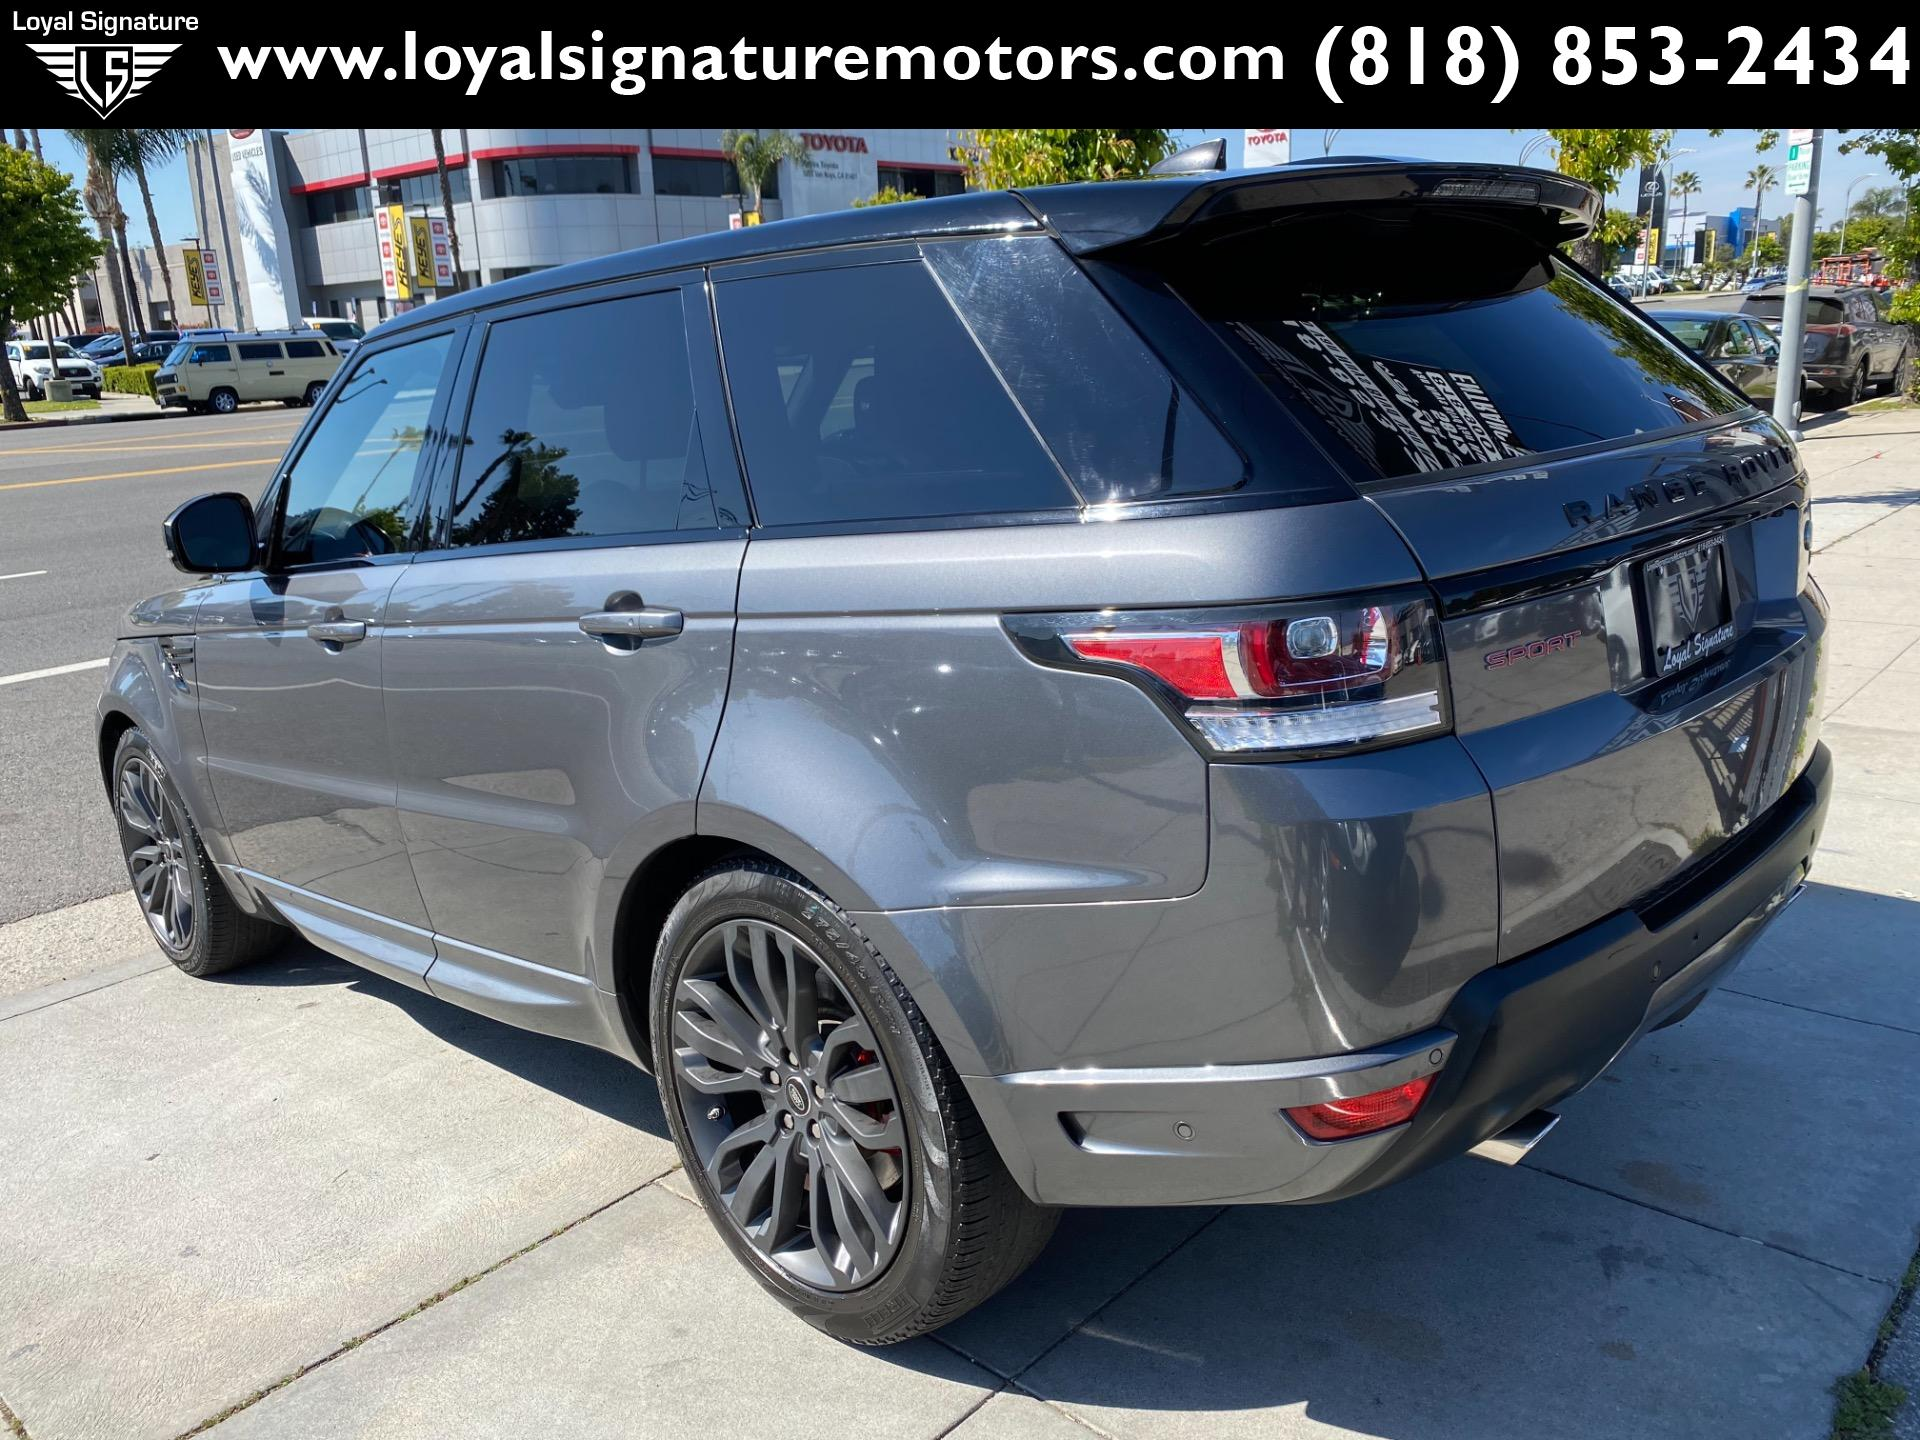 Used-2017-Land-Rover-Range-Rover-Sport-HSE-Dynamic